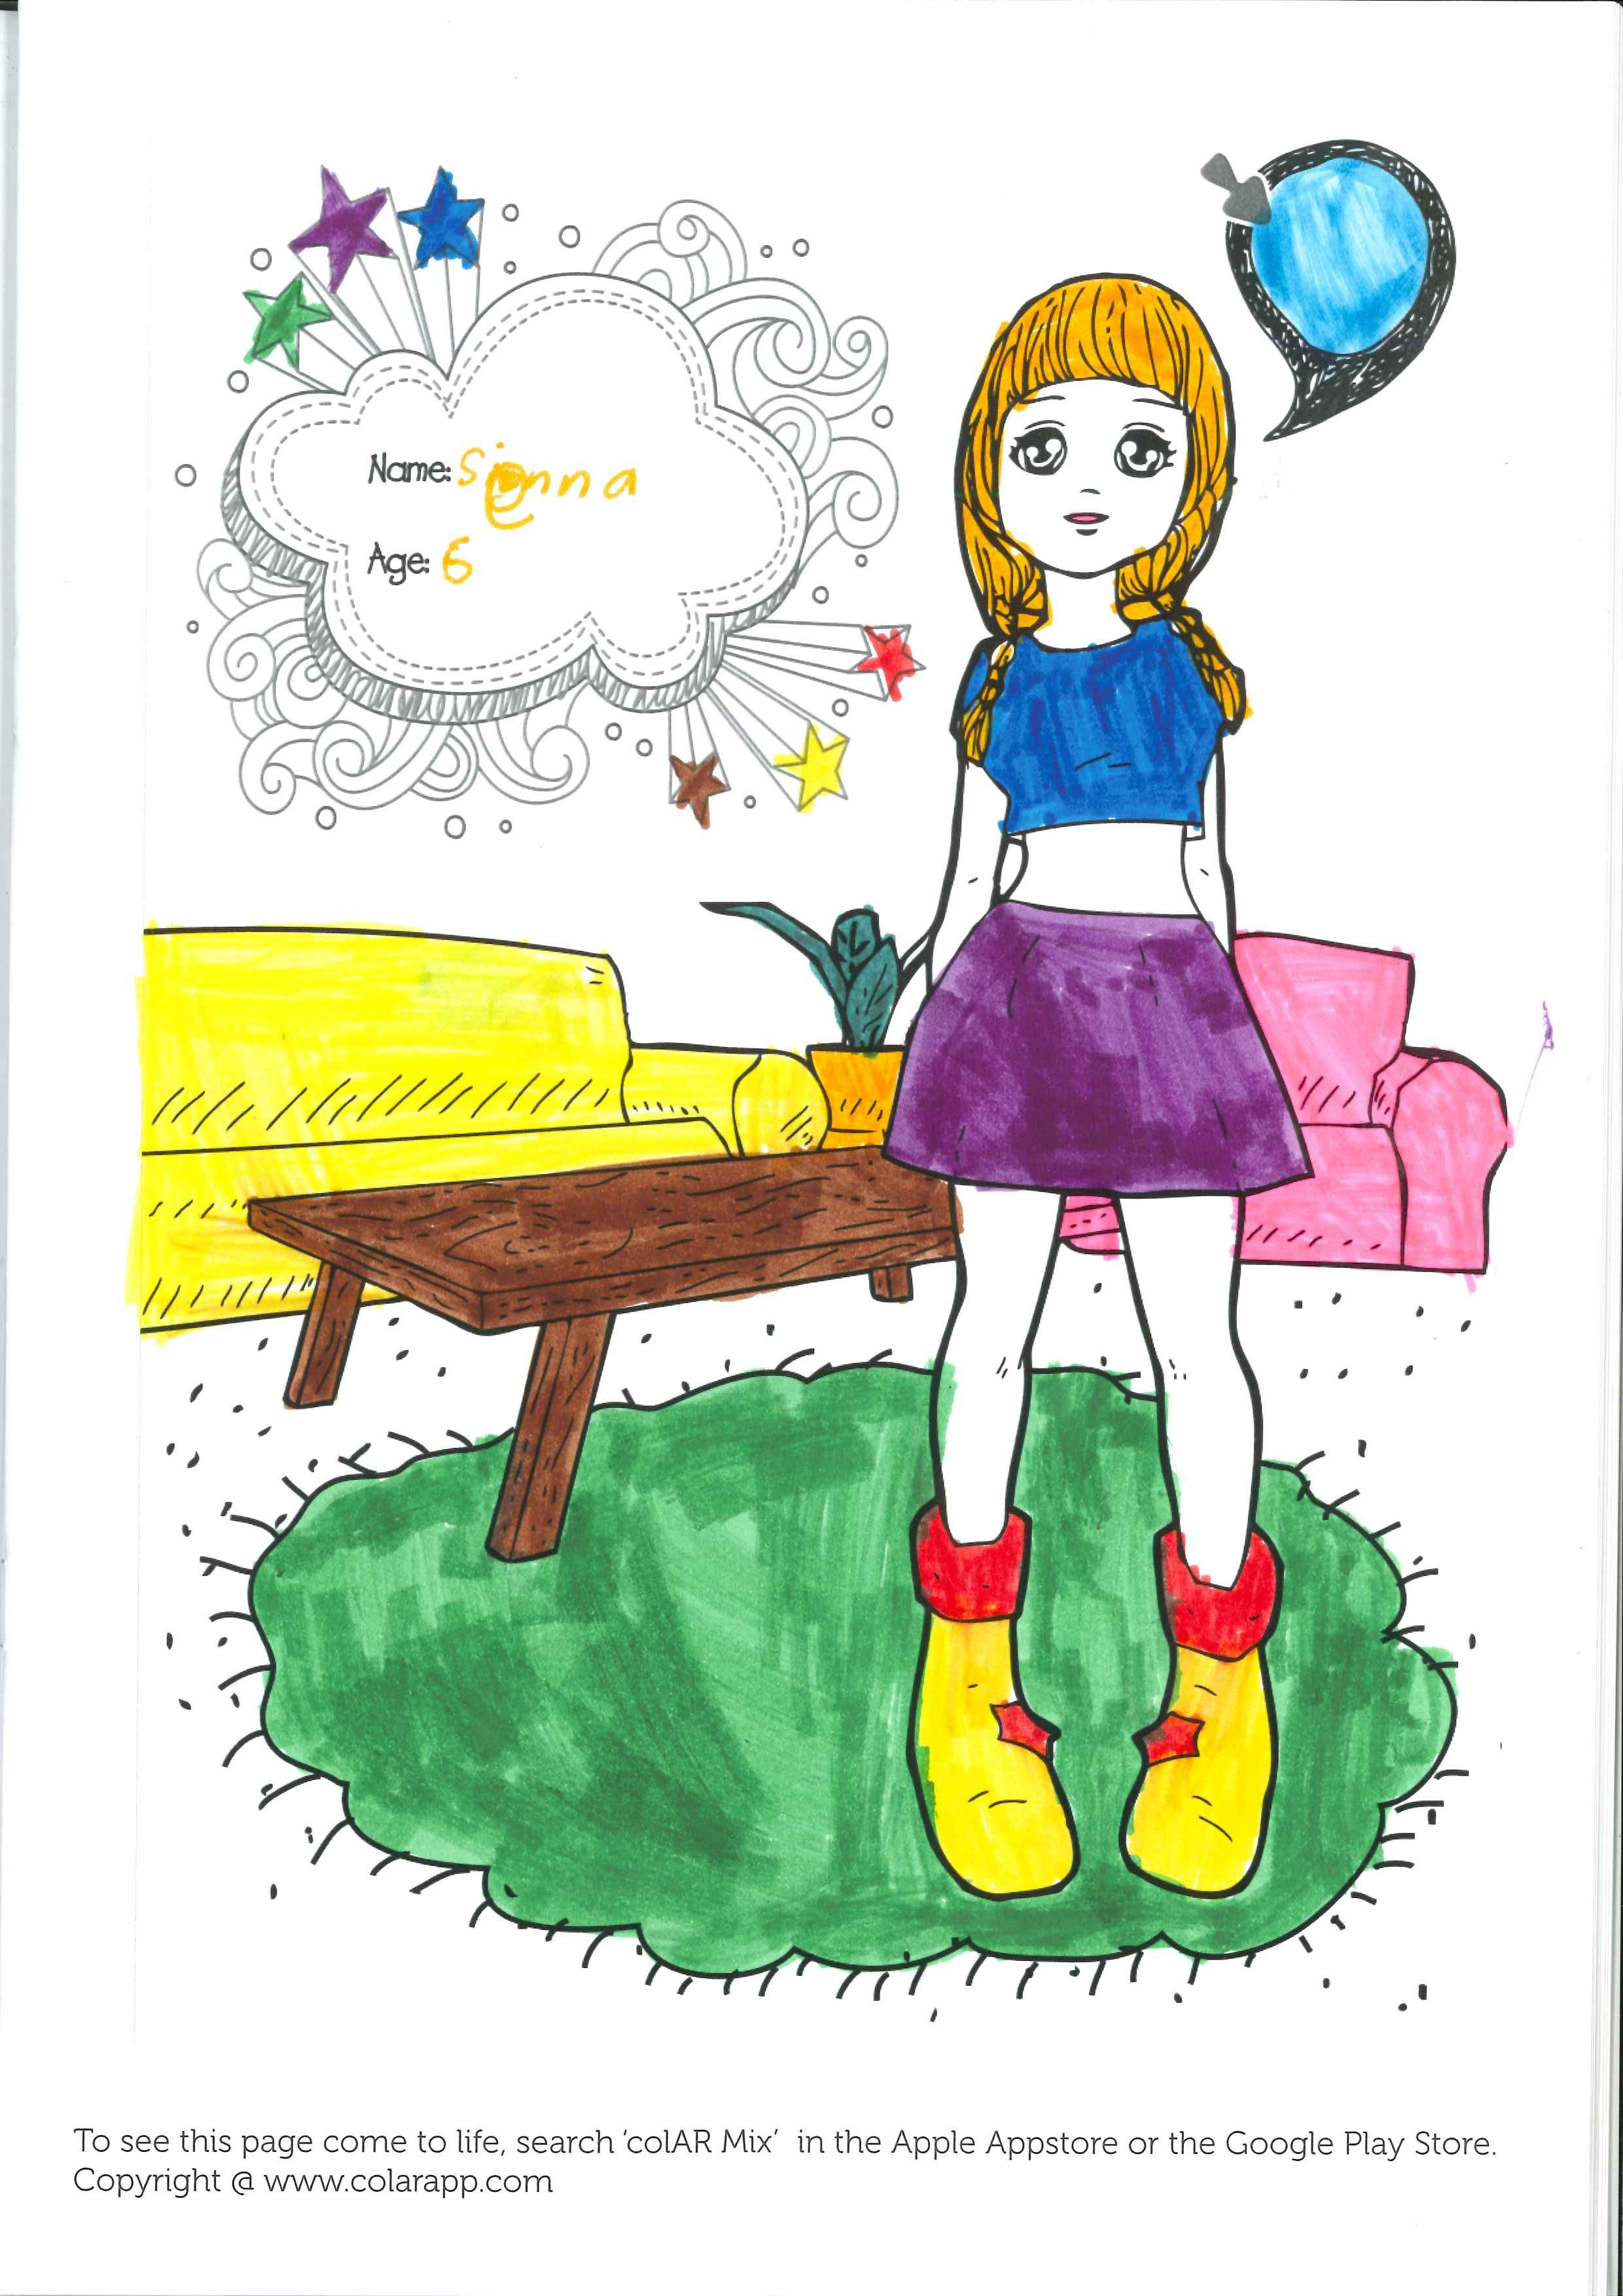 Colar mix kidsfest workshop books worth for Colar mix coloring pages